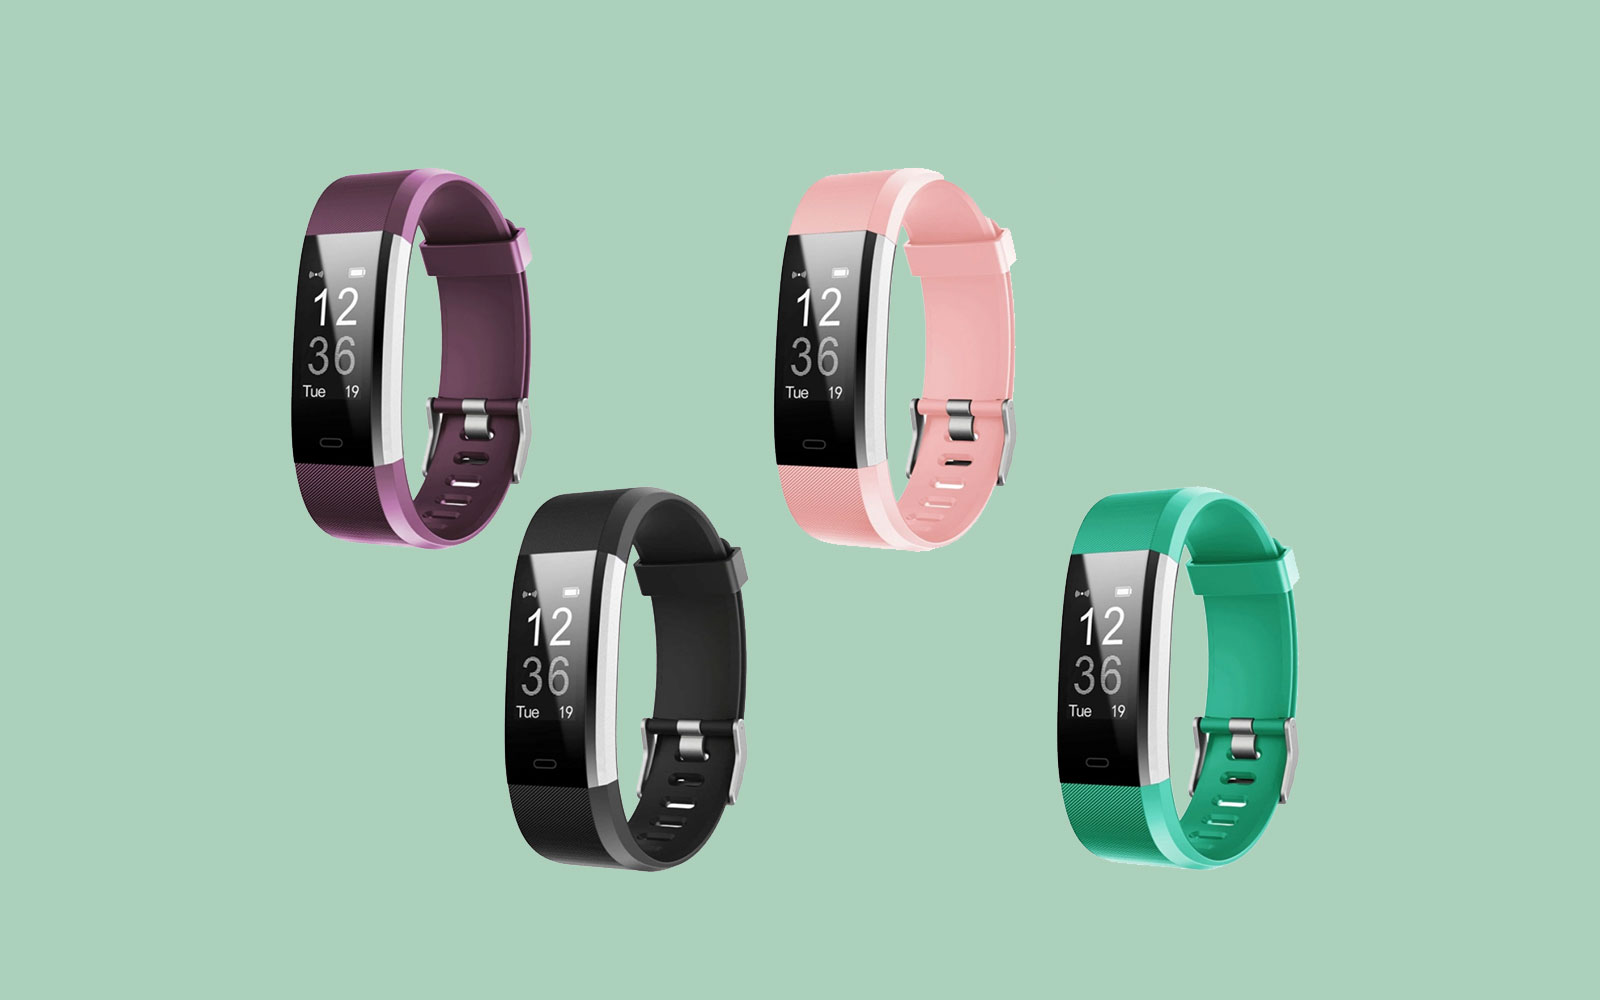 This $30 Fitness Tracker Has More Five-star Amazon Reviews Than the Fitbit